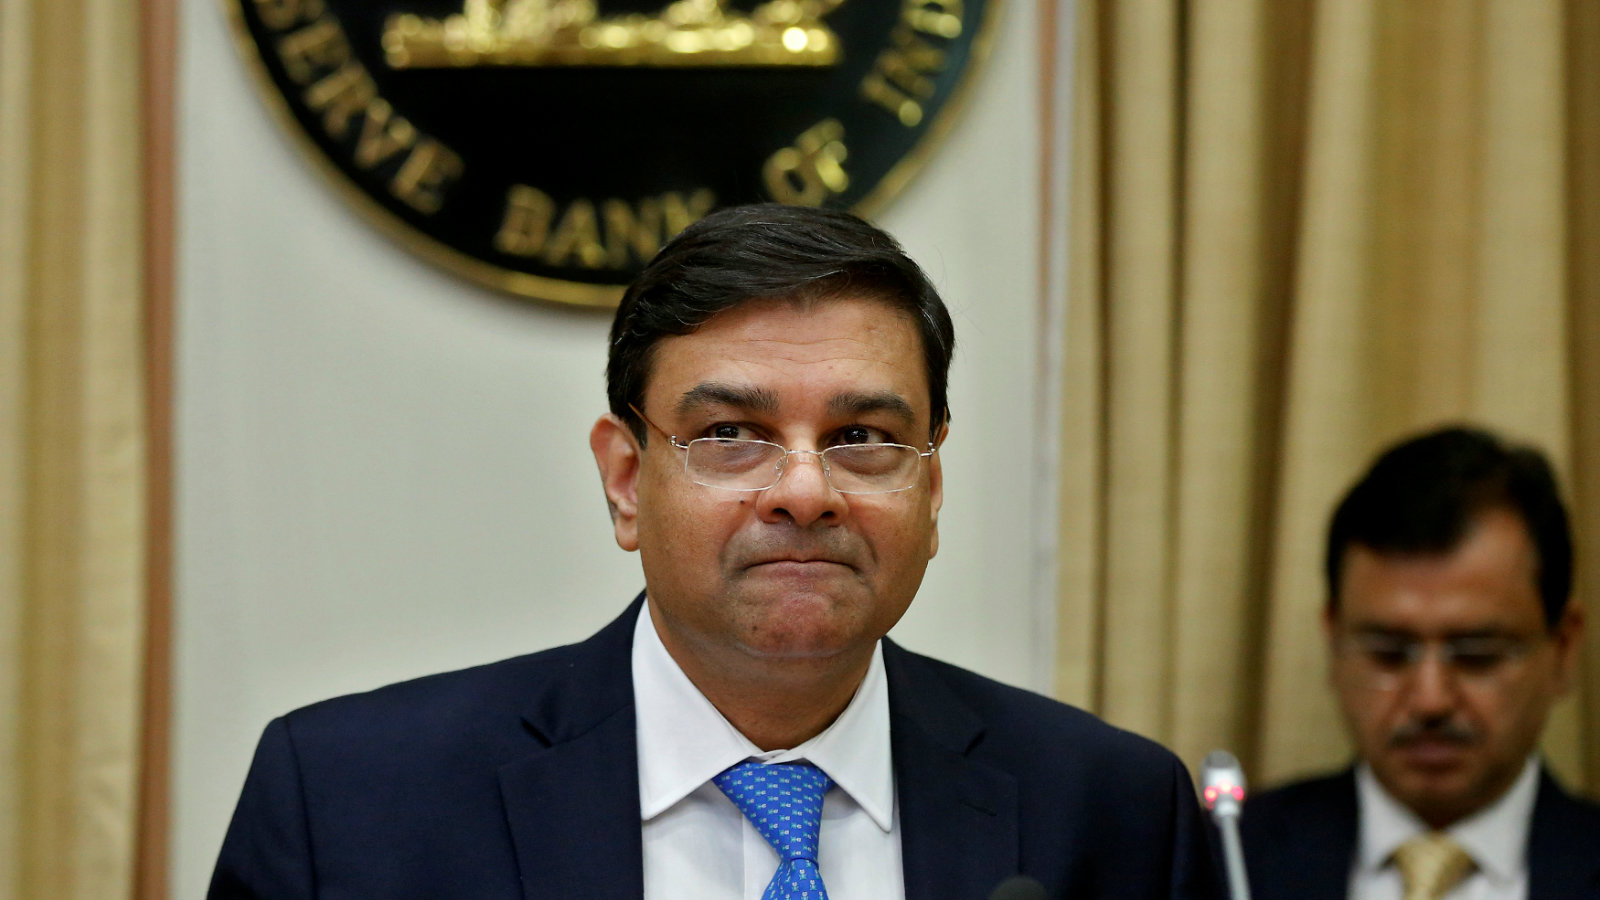 The Reserve Bank of India (RBI) Governor Urjit Patel attends a news conference after the bi-monthly monetary policy review in Mumbai, India April 6, 2017.